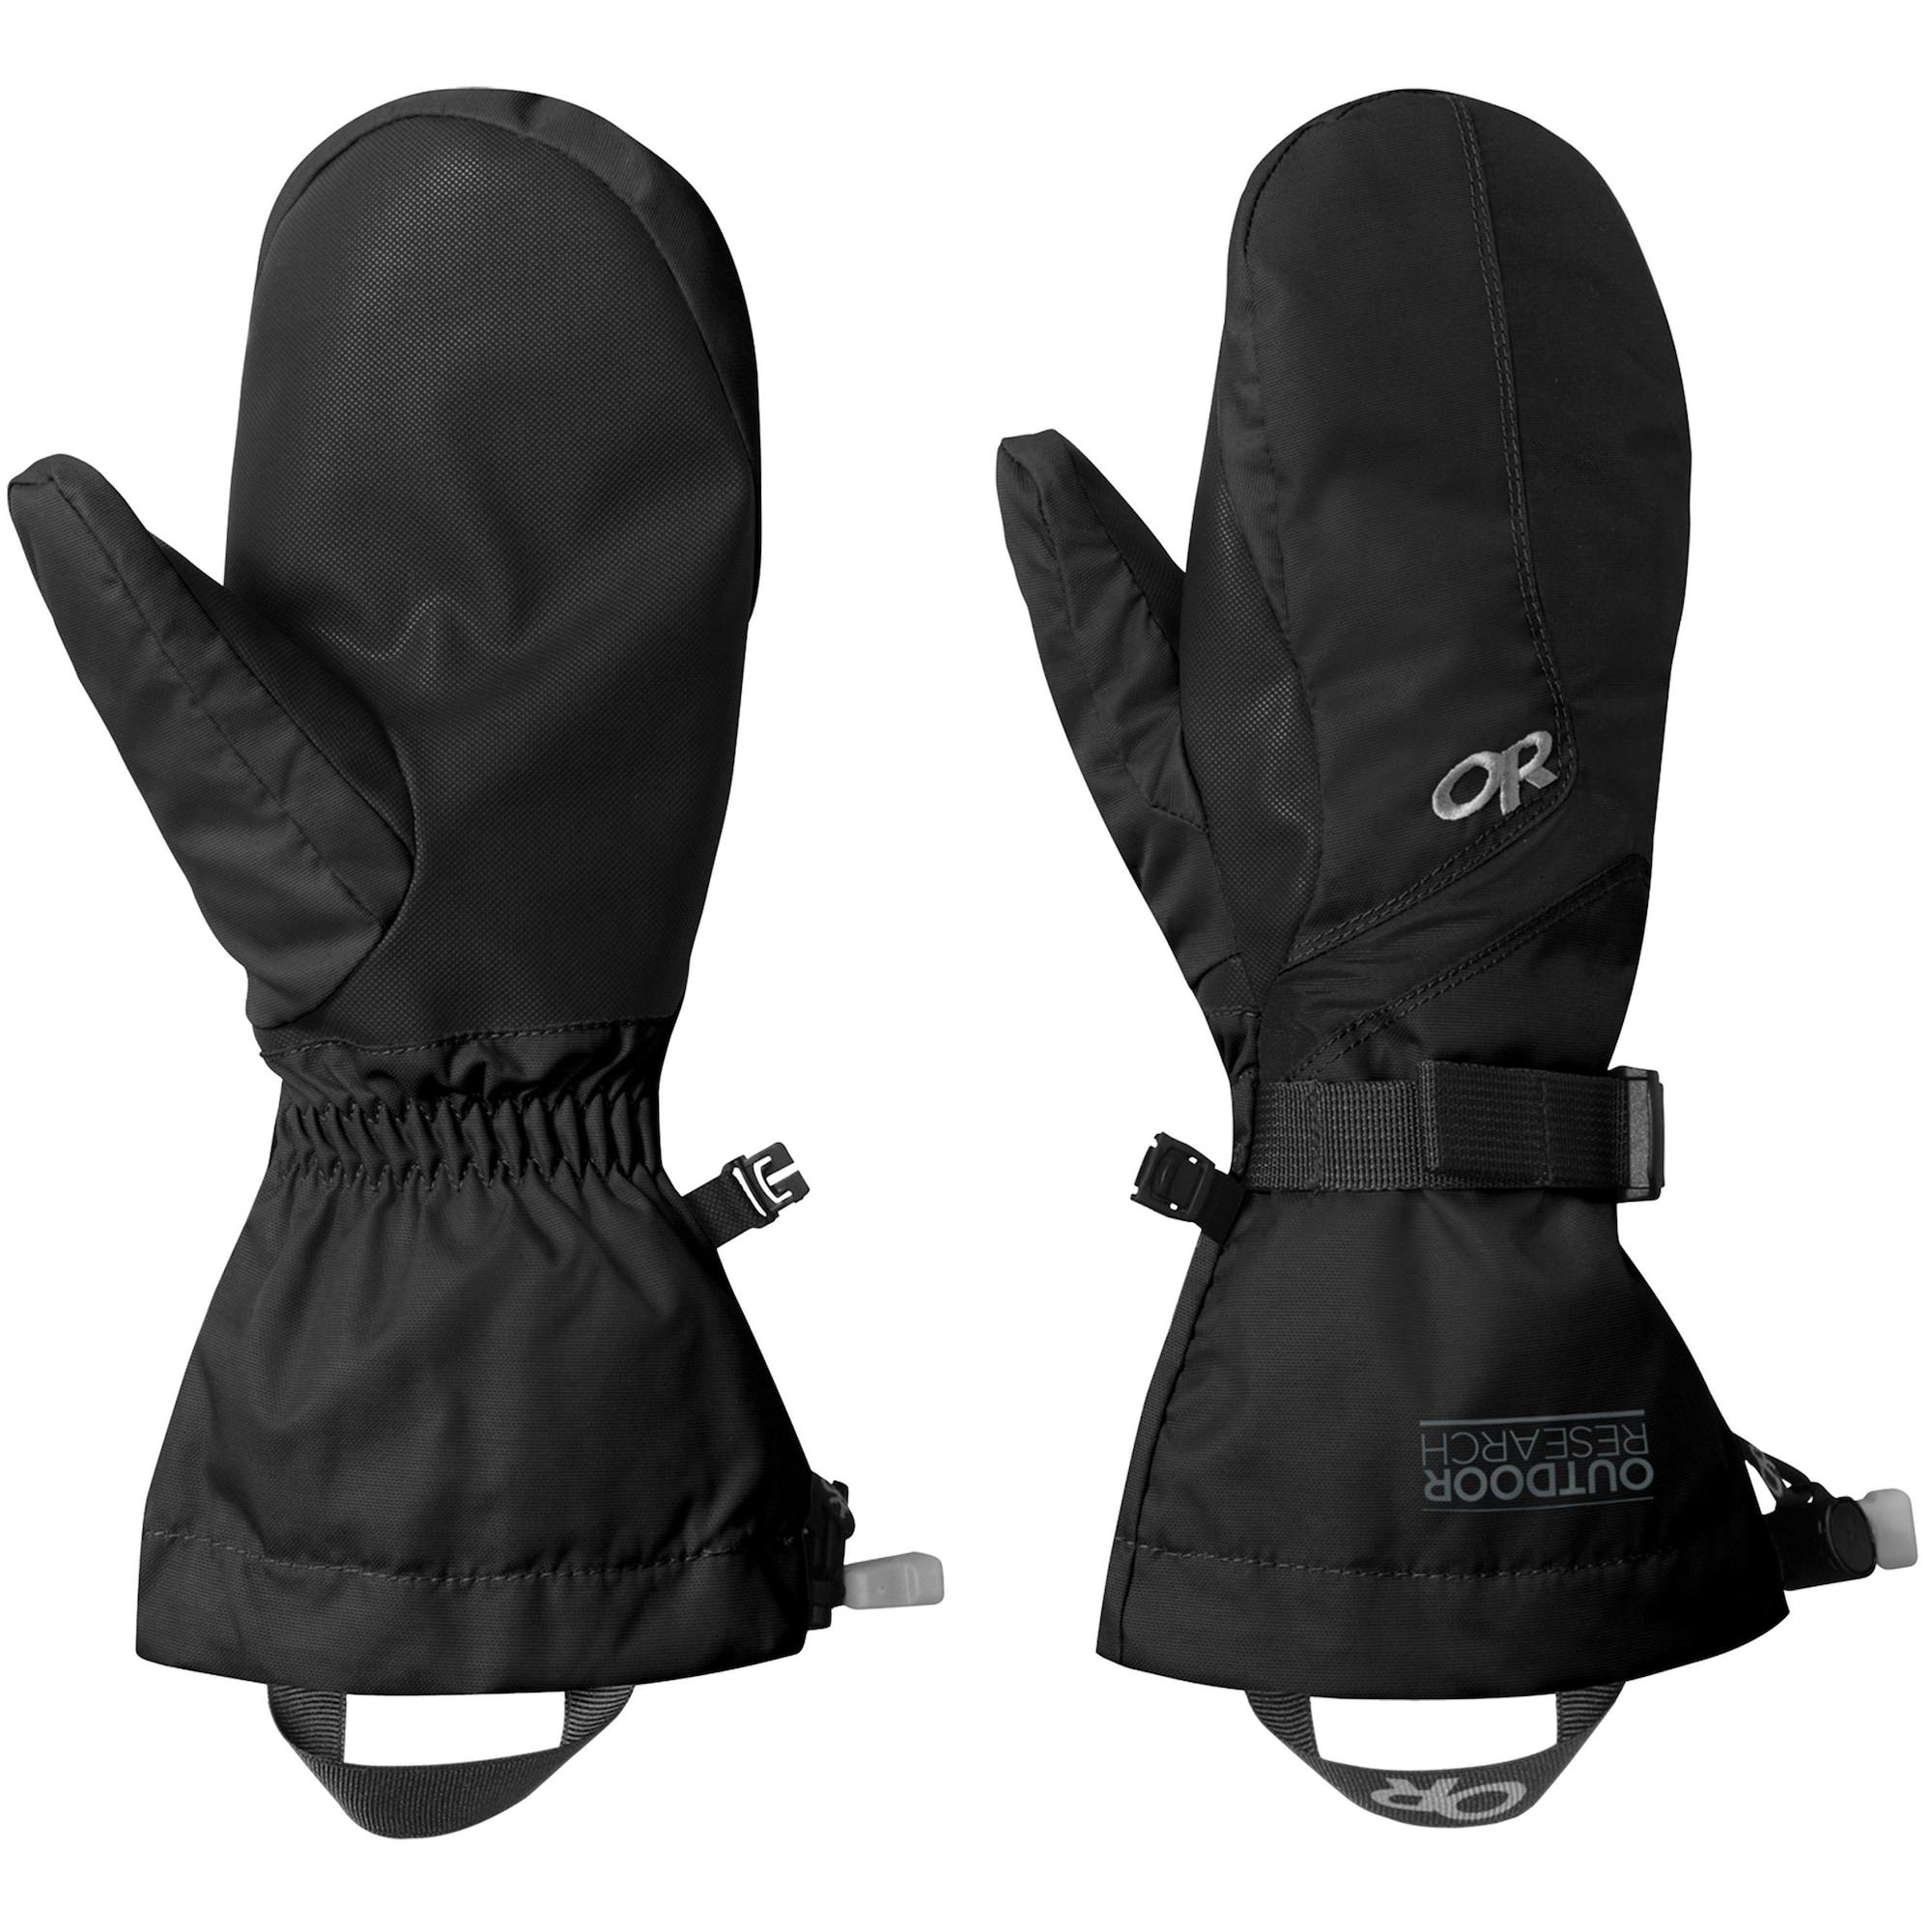 Handschuhe für Frauen - Outdoor Research Outdoor Research Adrenaline Outdoorhandschuhe Damen schwarz  - Onlineshop ABOUT YOU